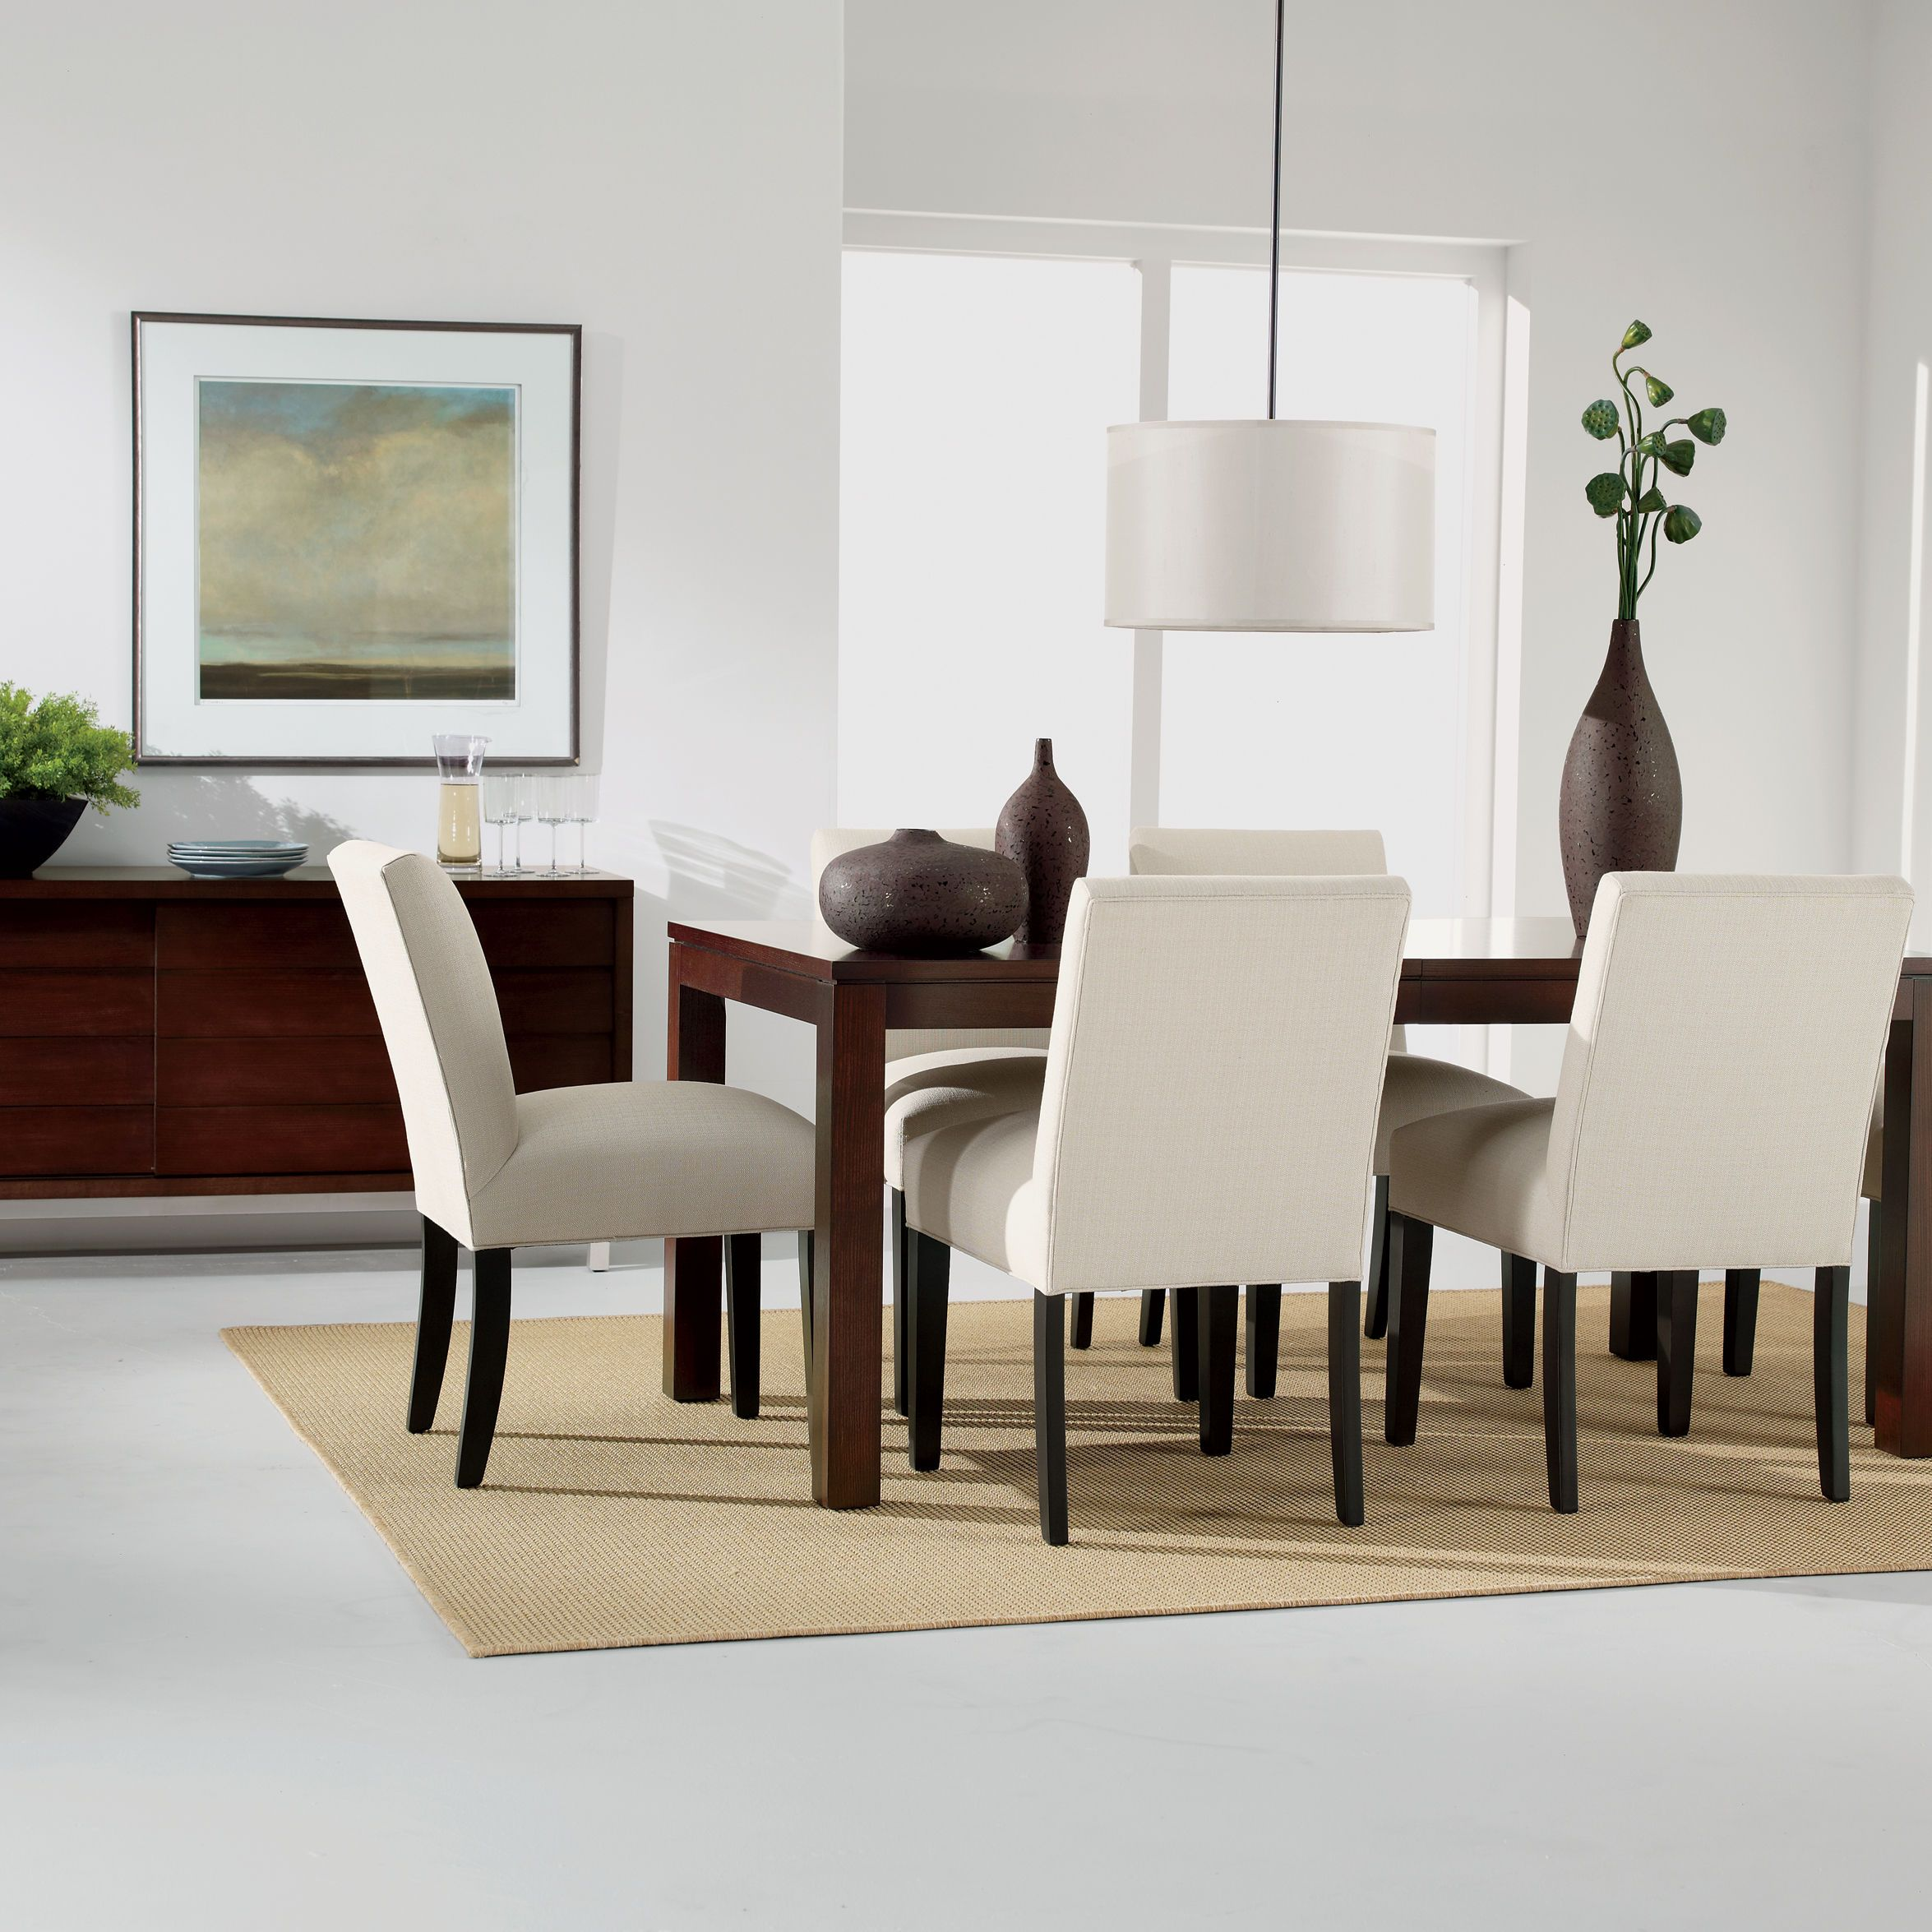 Midtown Dining Table  Ethan Allen Us  Home Living  Pinterest Amazing Ethan Allen Dining Room Tables Inspiration Design